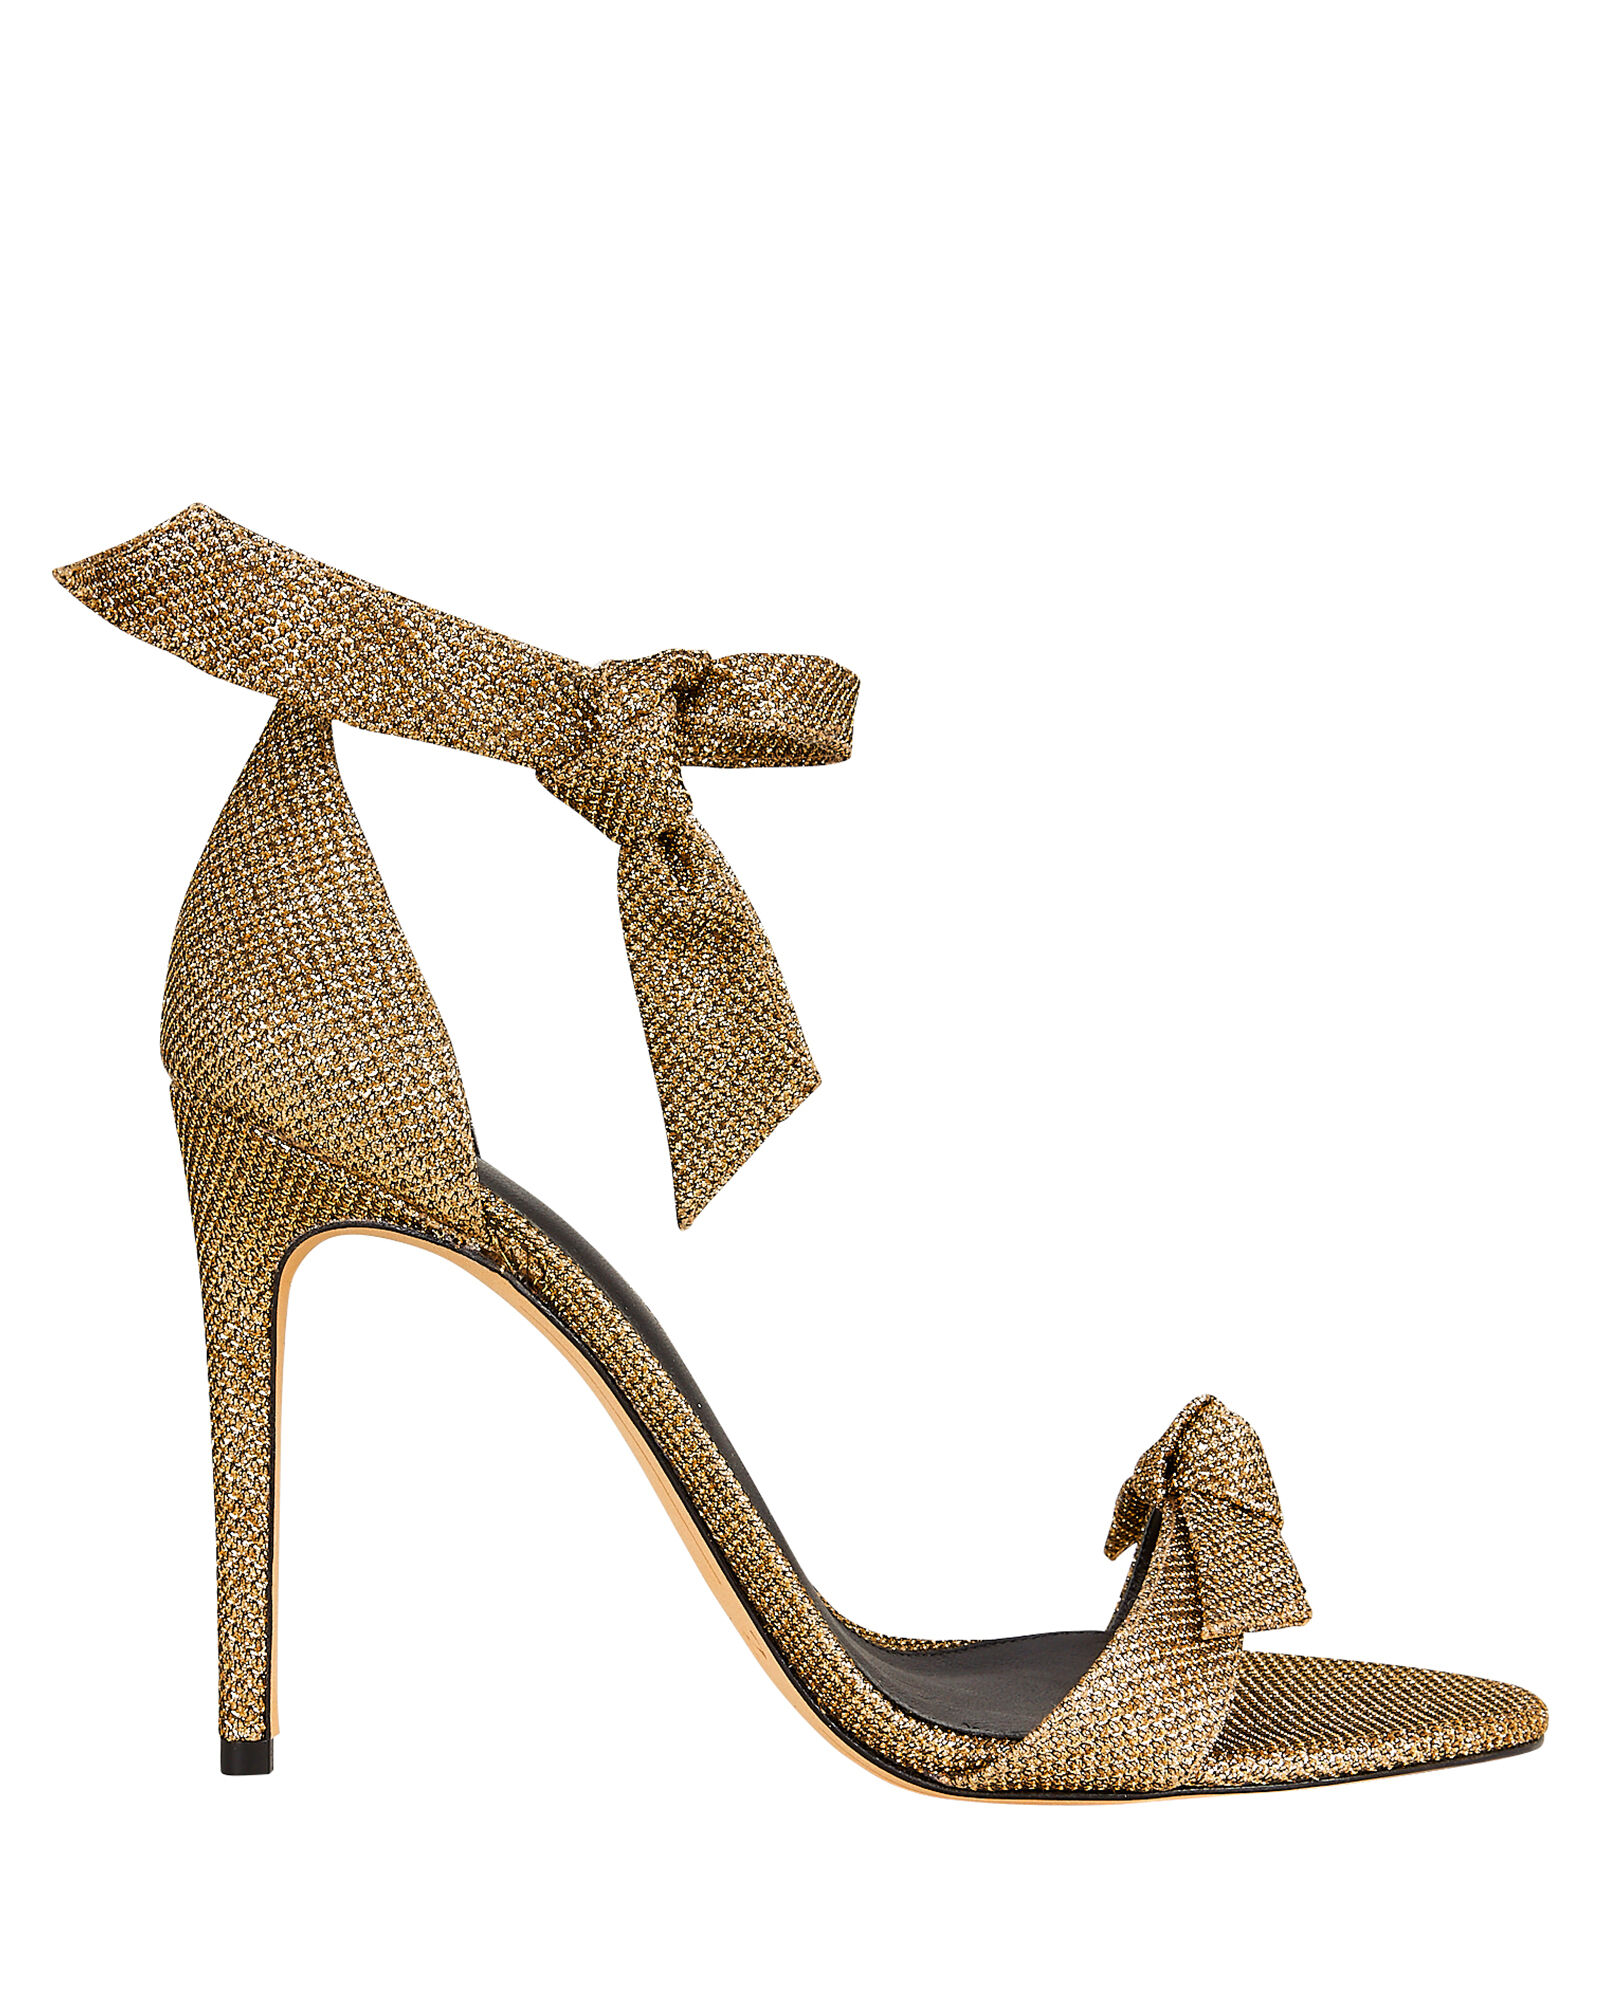 Clarita 100 Lamé Sandals, METALLIC GOLD, hi-res